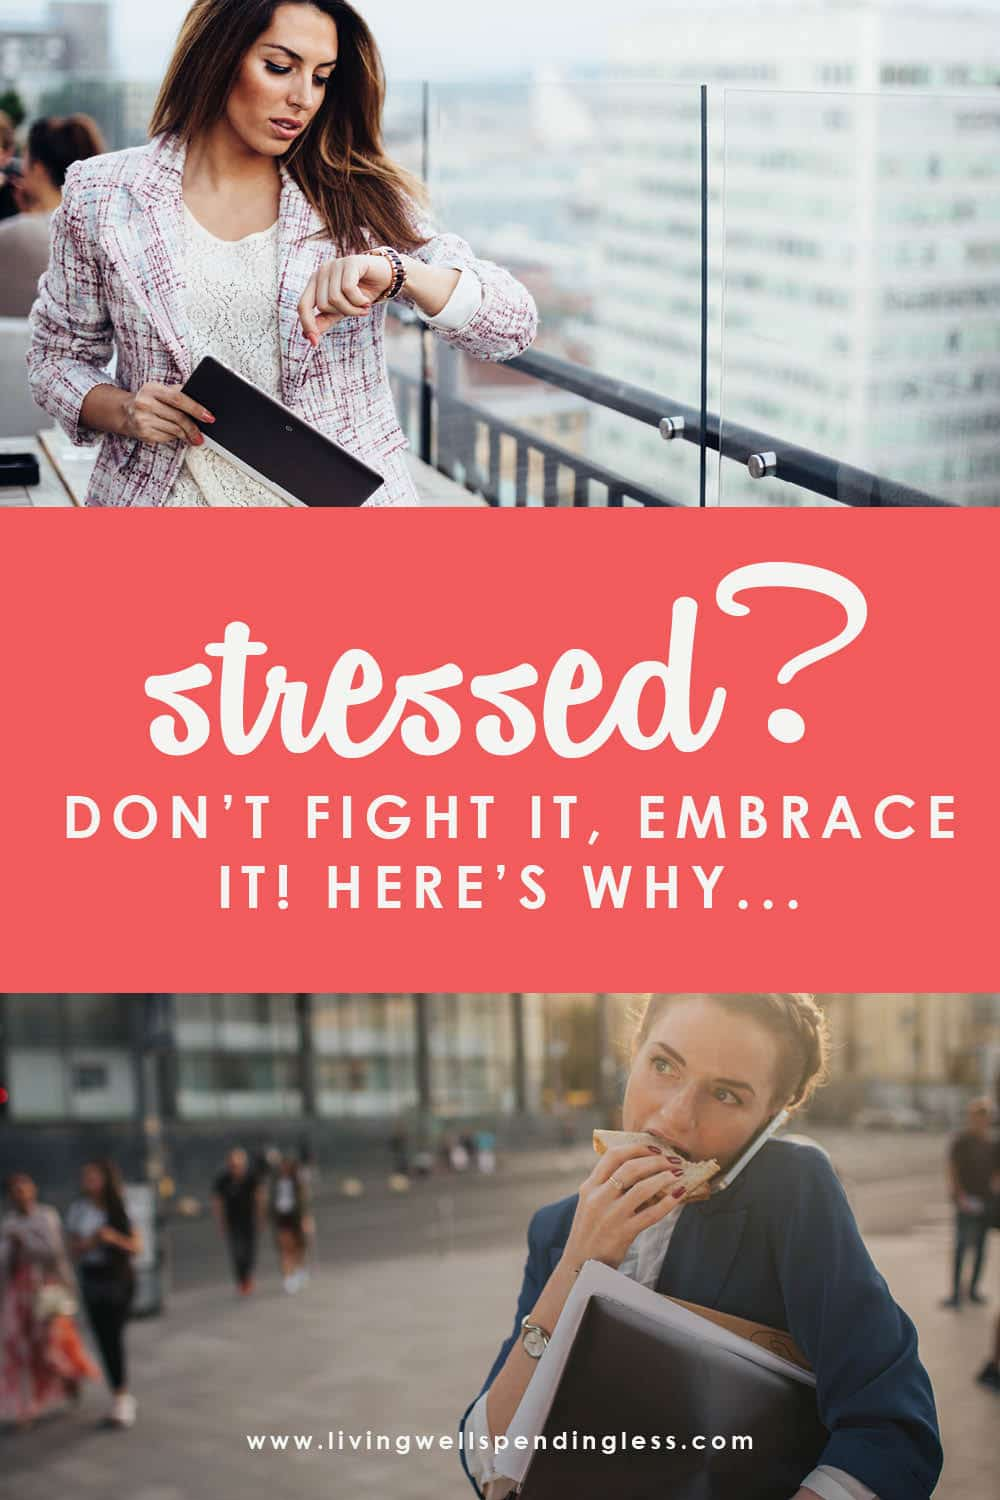 Did you know that stress can be positive? Here are some helpful ways to eliminate the bad stress in your life and embrace the good! #stressrelief #stress #eliminatestress